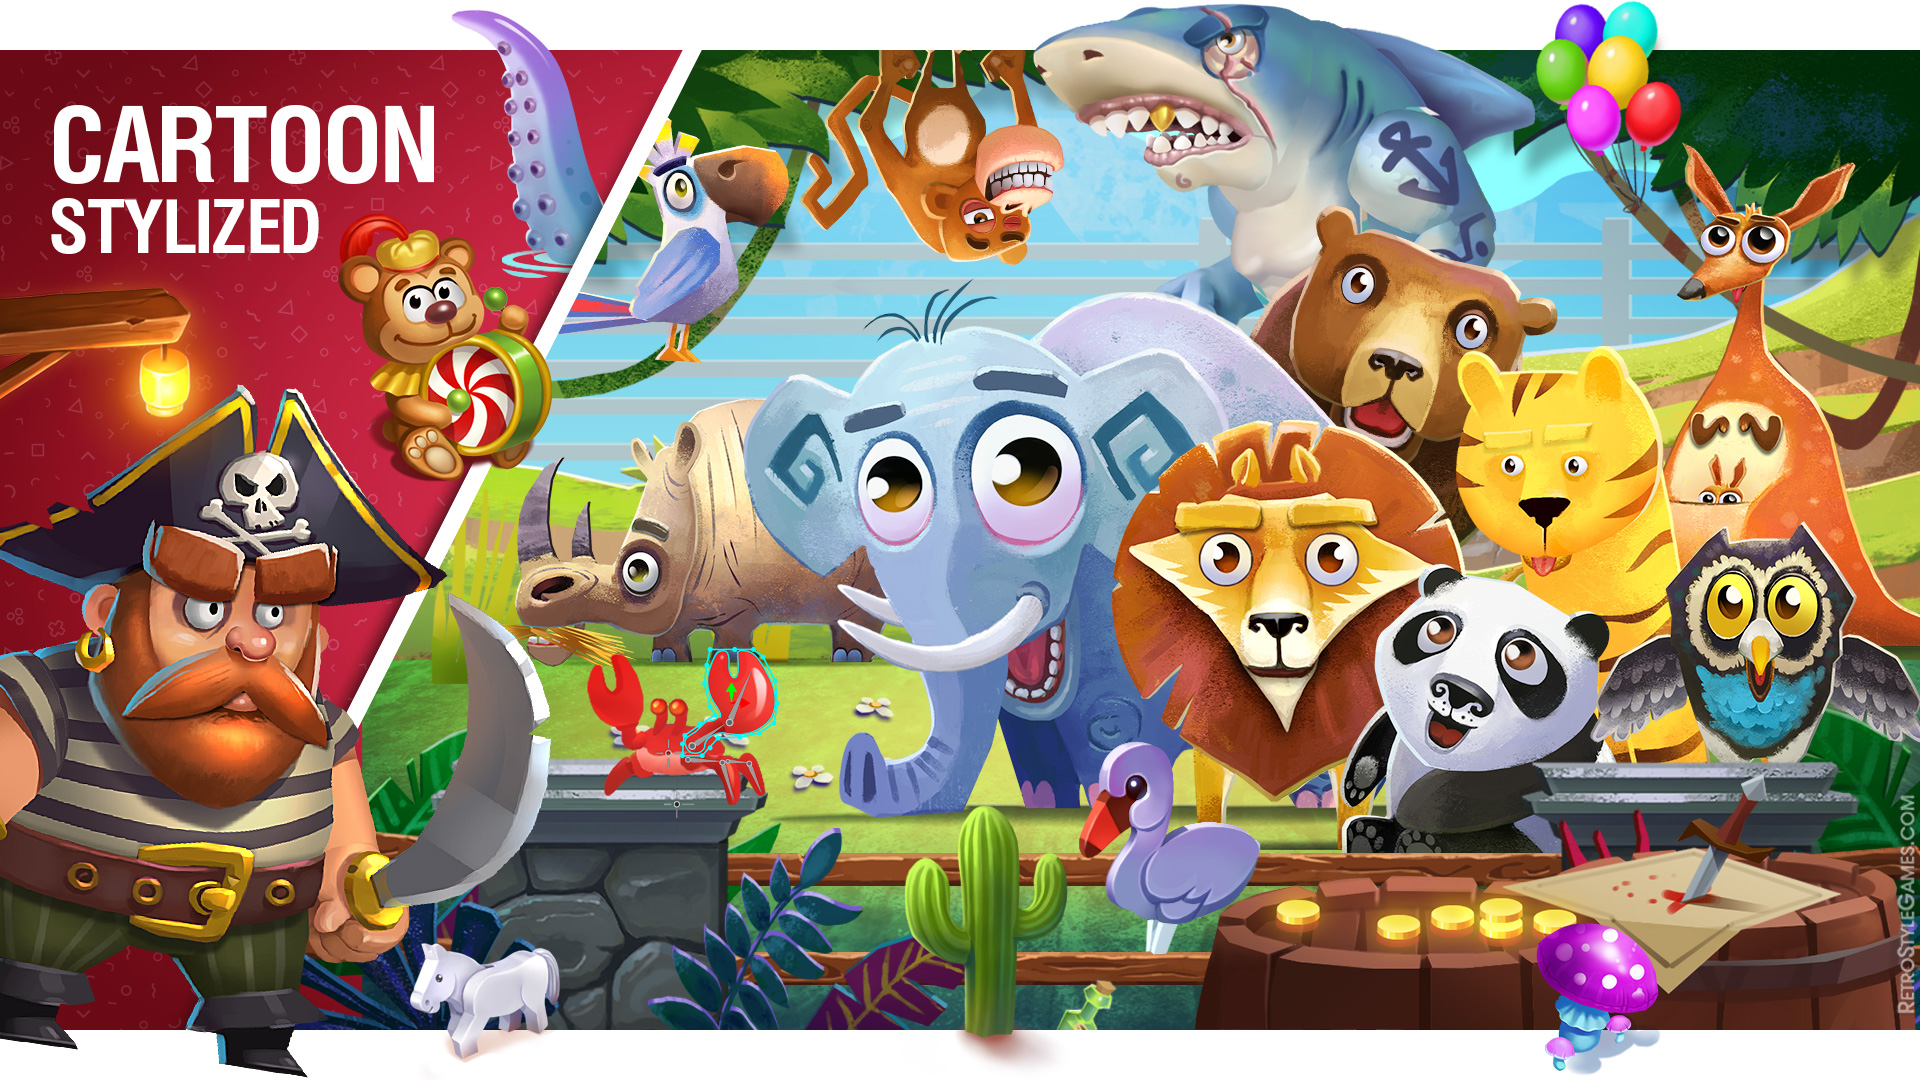 2D Game Cartoon Stylized Background Pirate Zoo